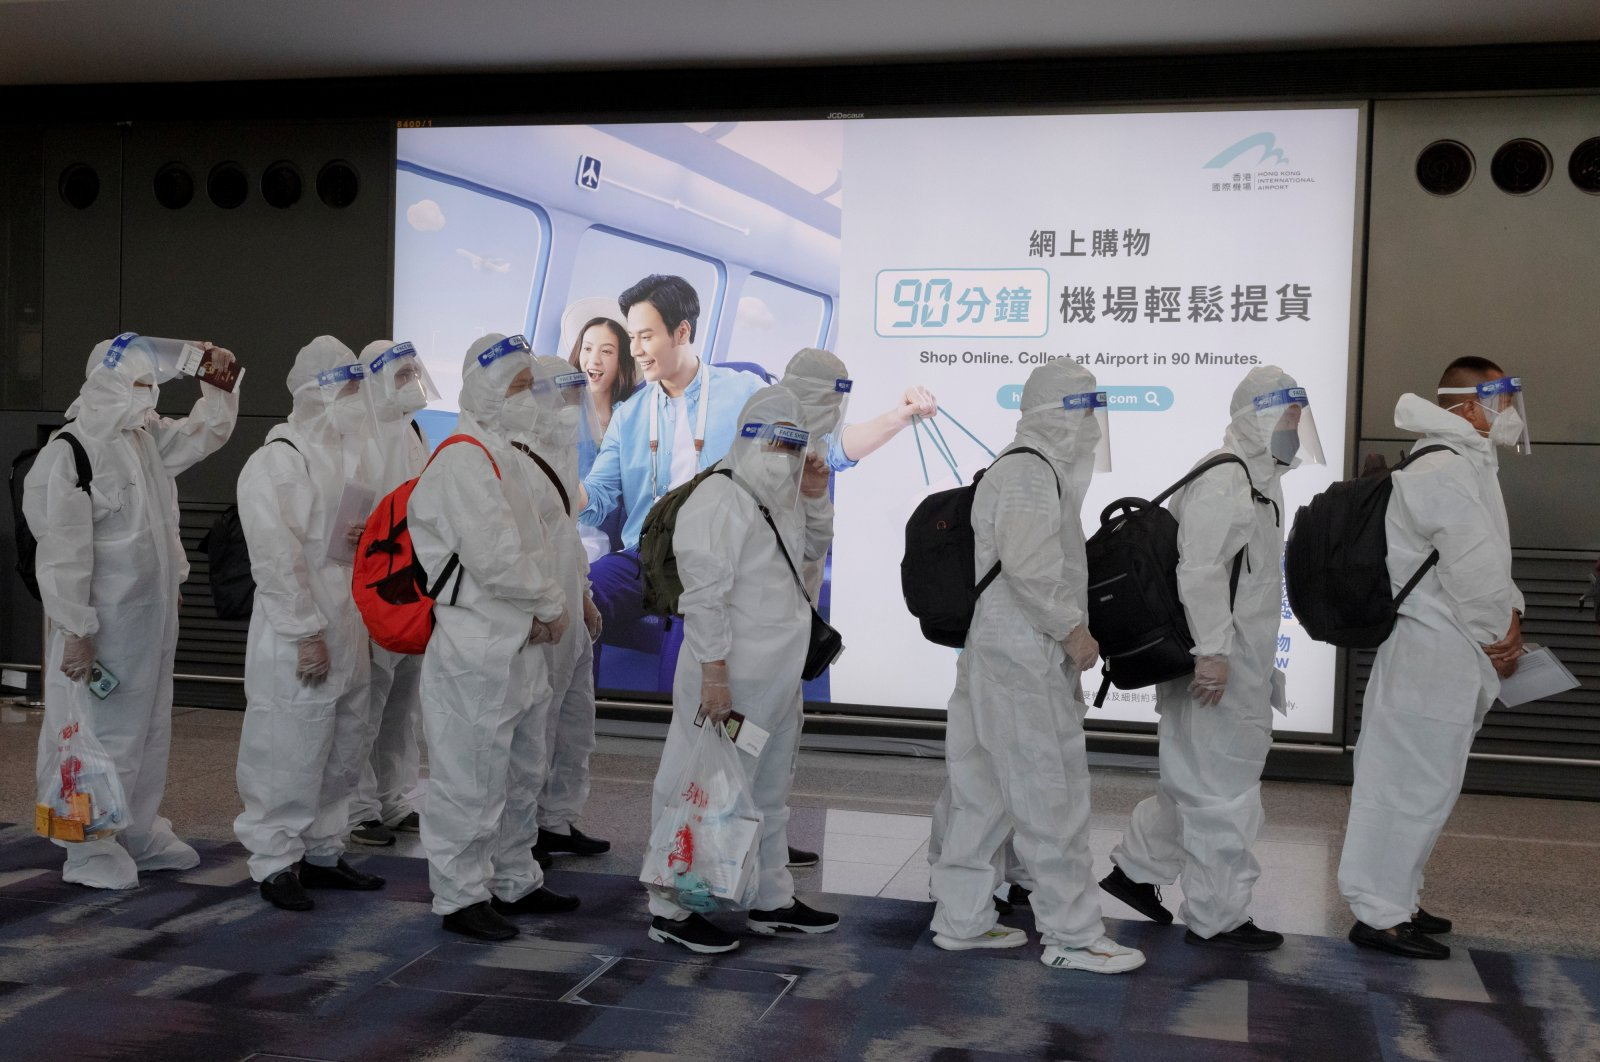 Passengers wearing protective suits (PPE) to protect themselves against COVID-19 line up to board their plane for an international flight at Hong Kong airport, China, July 9, 2021. (Reuters Photo)